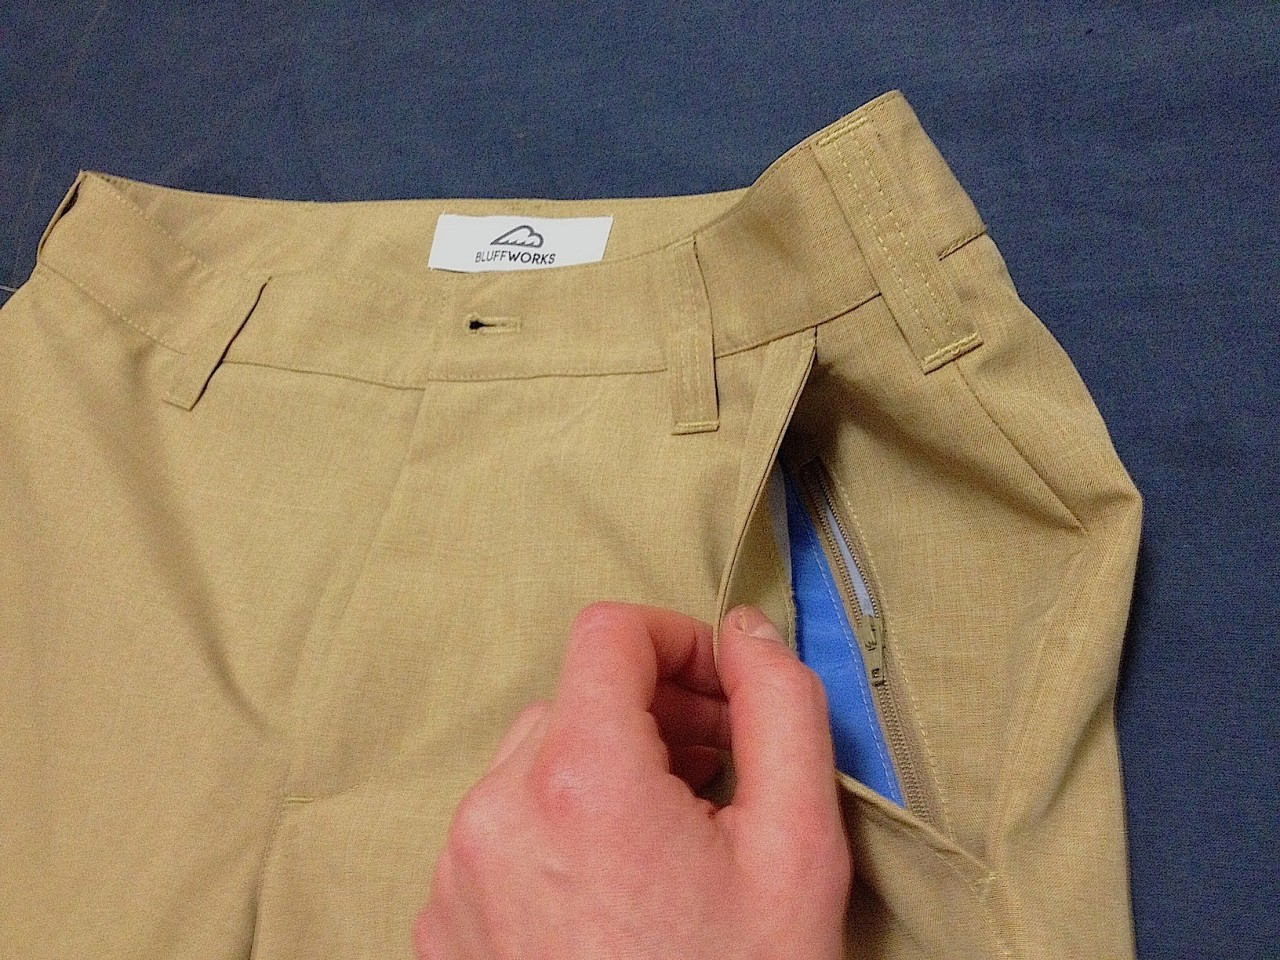 Bluffworks travel pants security pocket